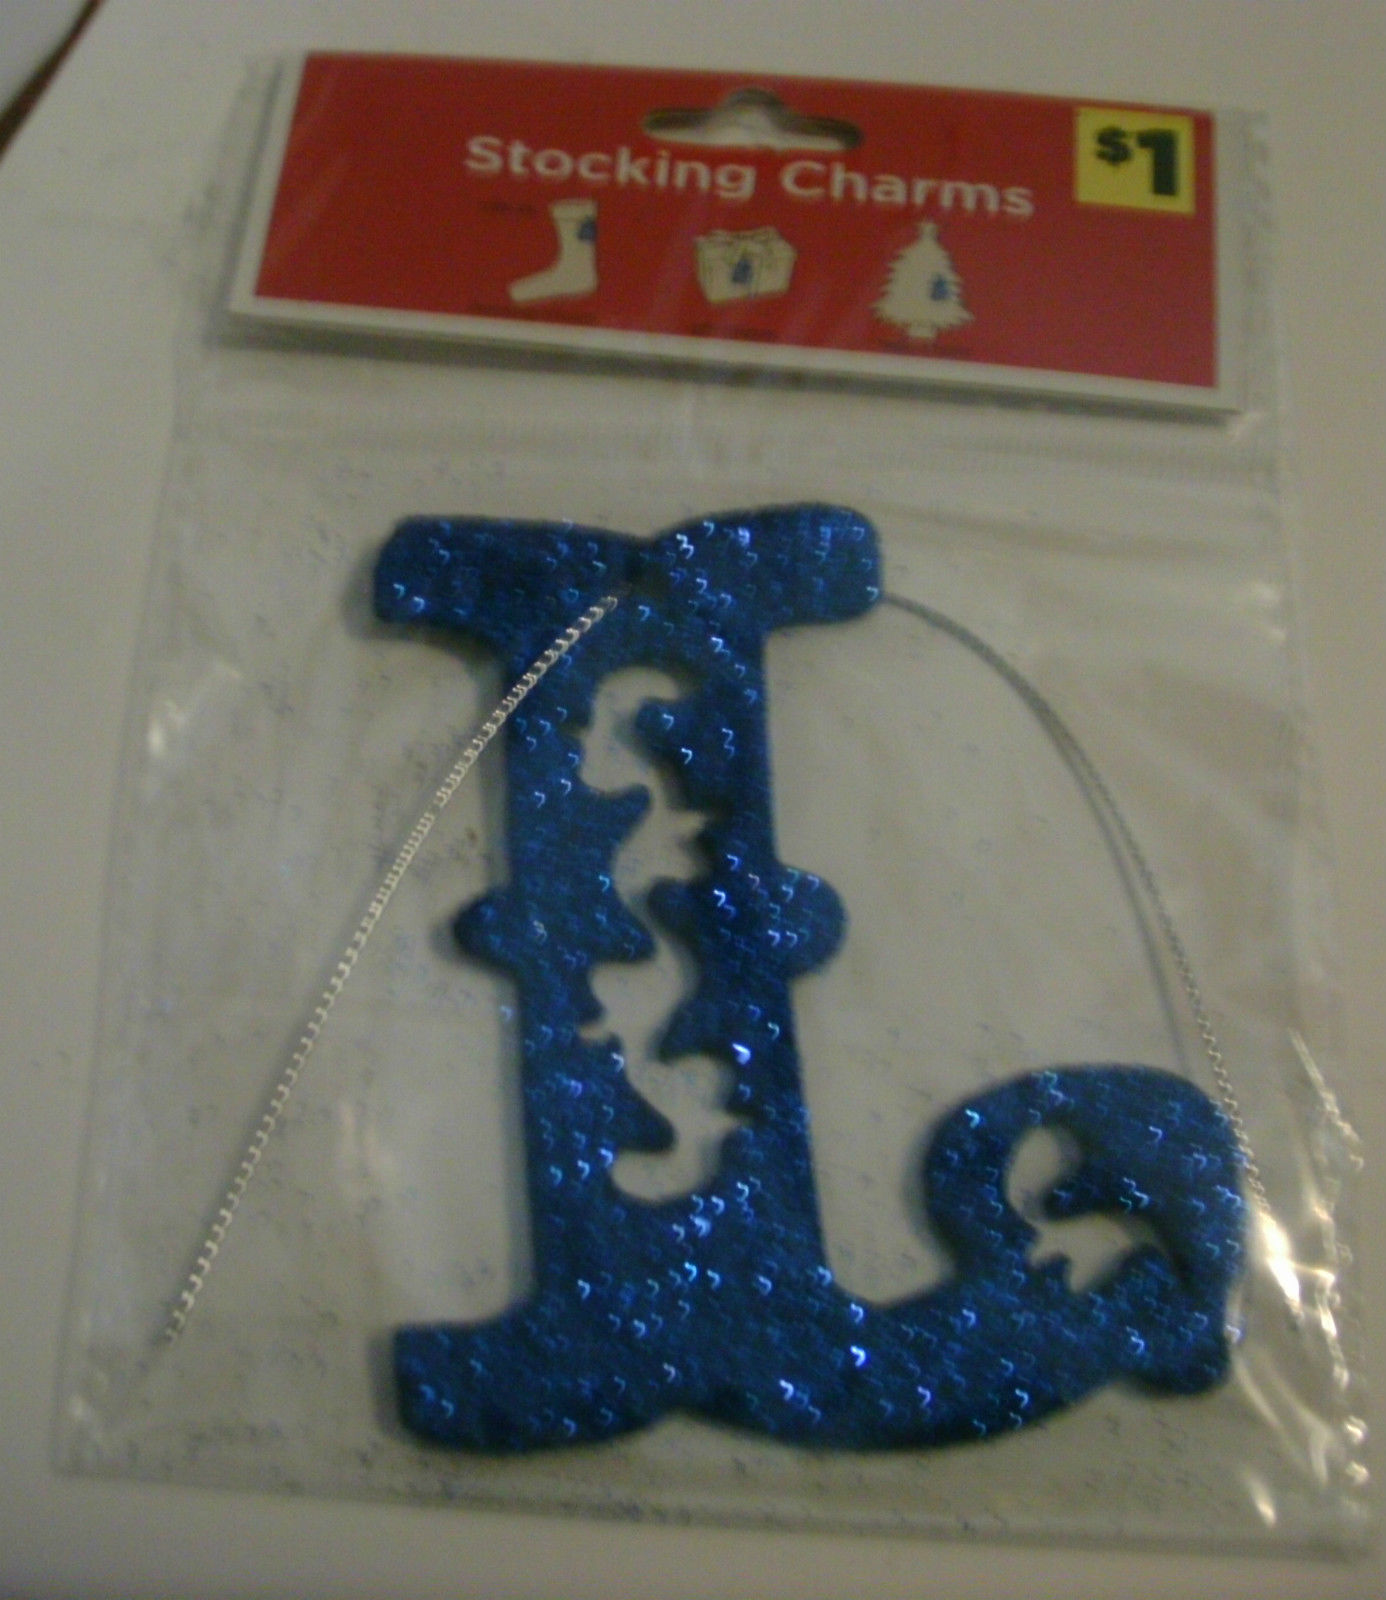 4 Stocking Charms Glittery Gray N, Green O, Green E, Blue L